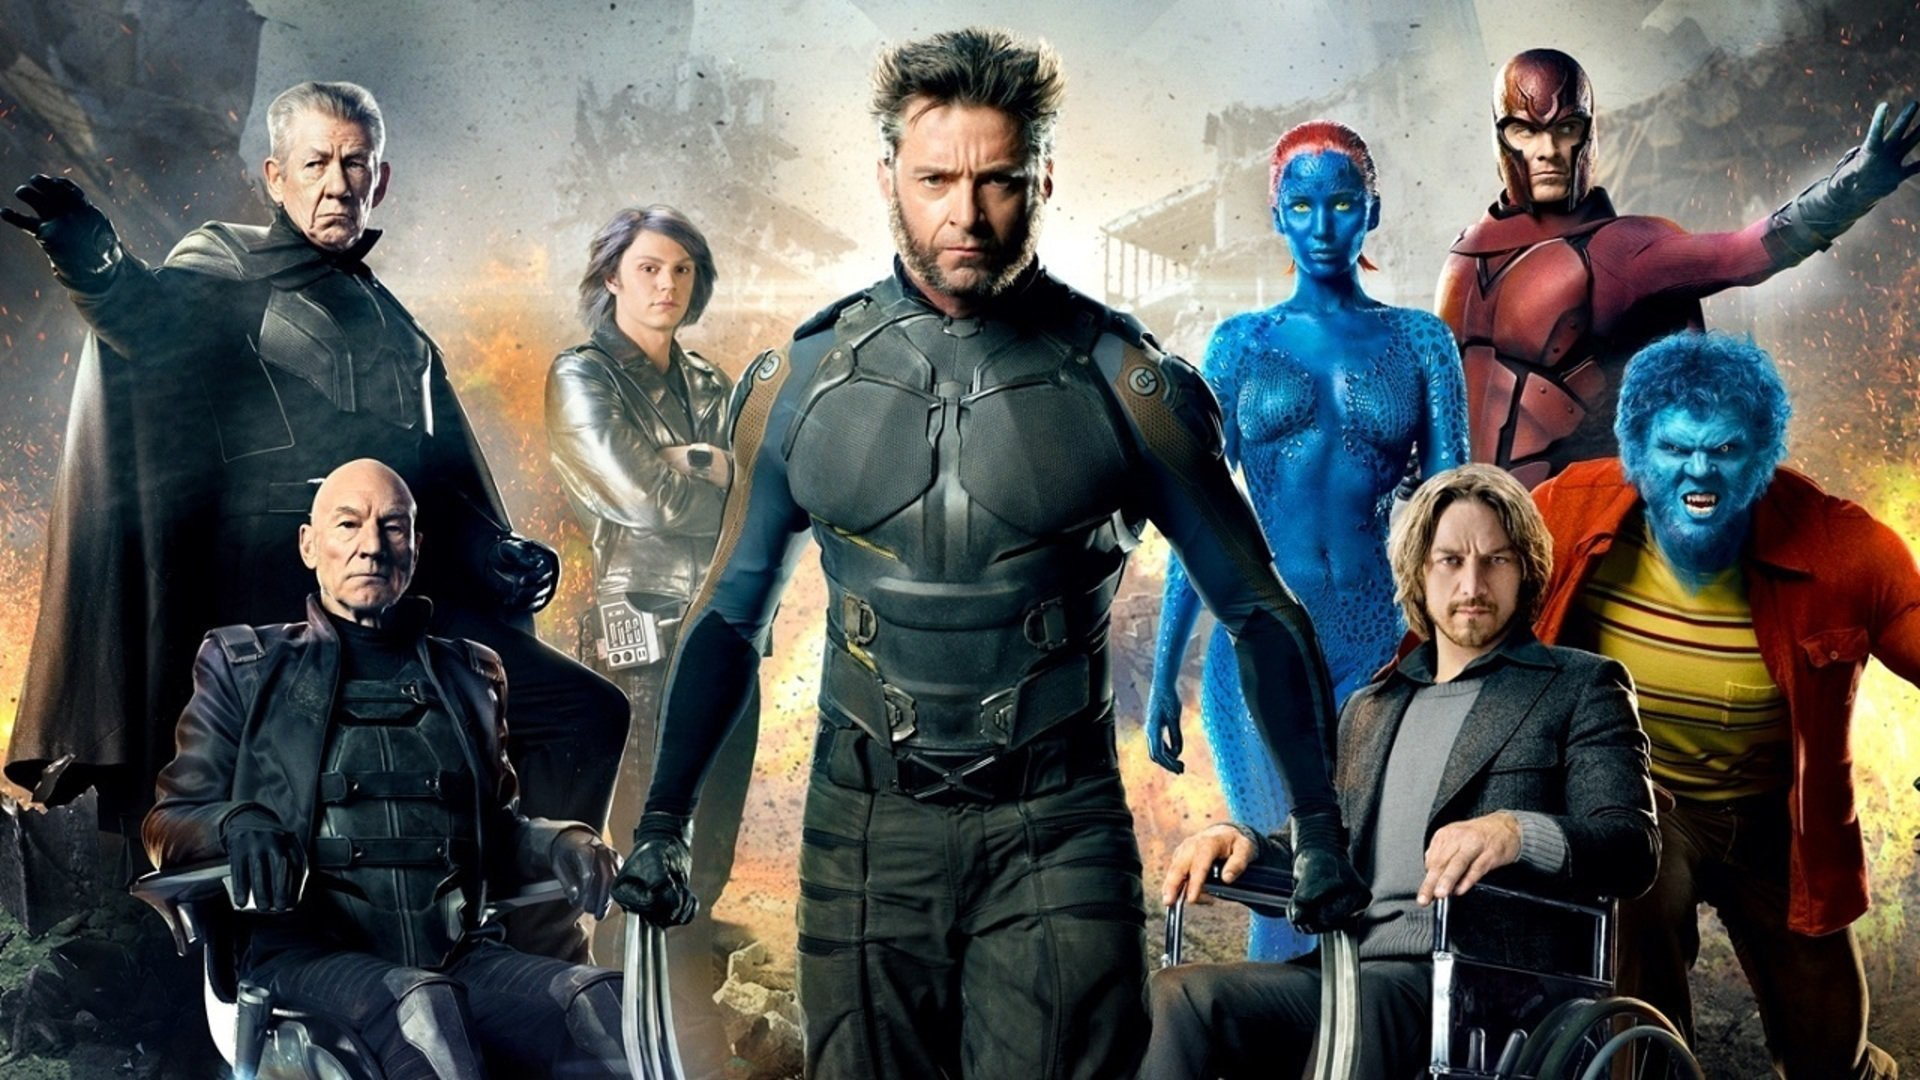 download X Men Days Of Future Past Wallpapers Pictures Images 1920x1080